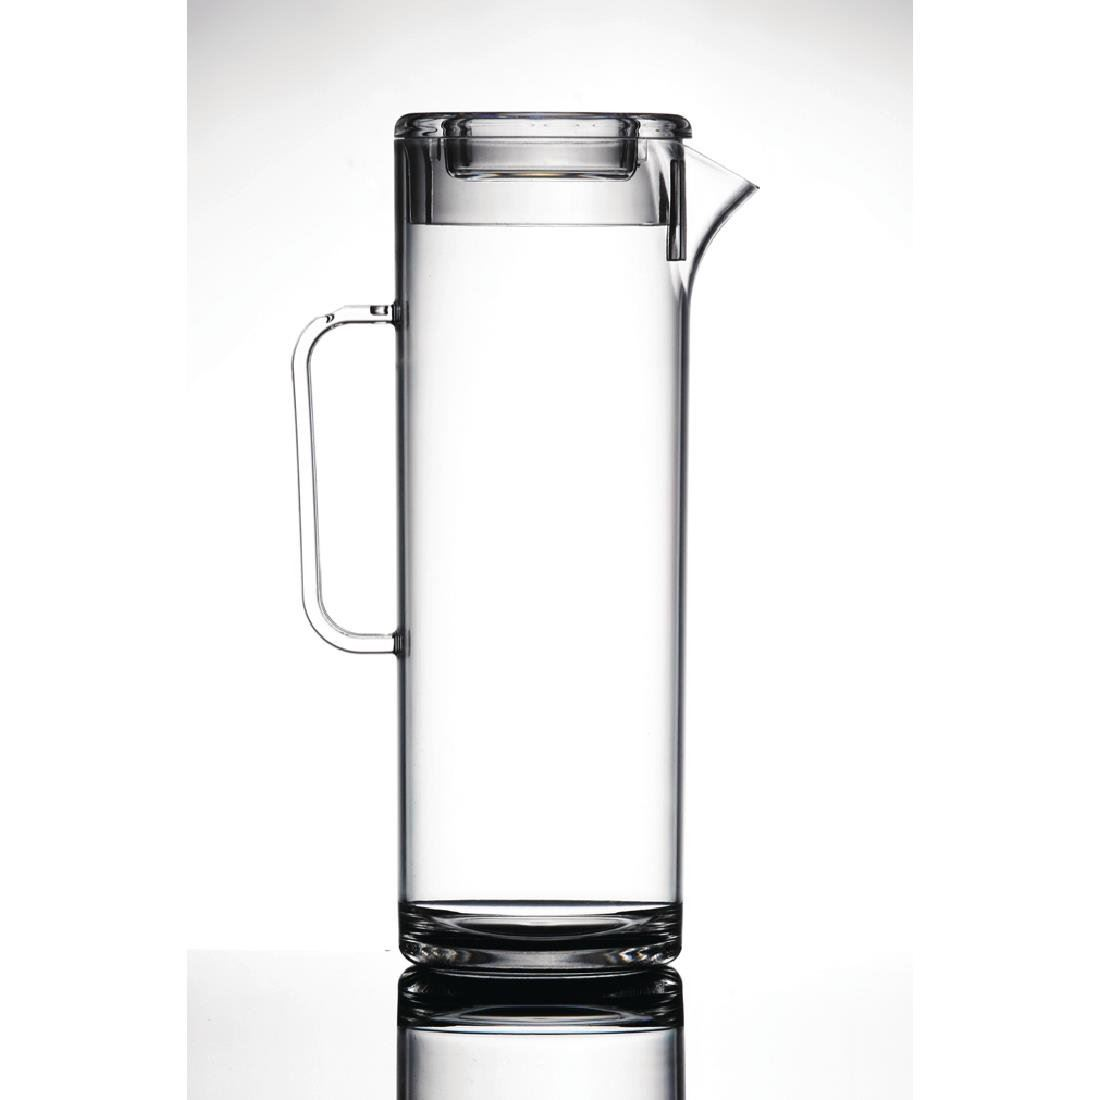 BBP Jugs with Tall and Slender Profile Made of Polycarbonate 1.7 L Pack of 4